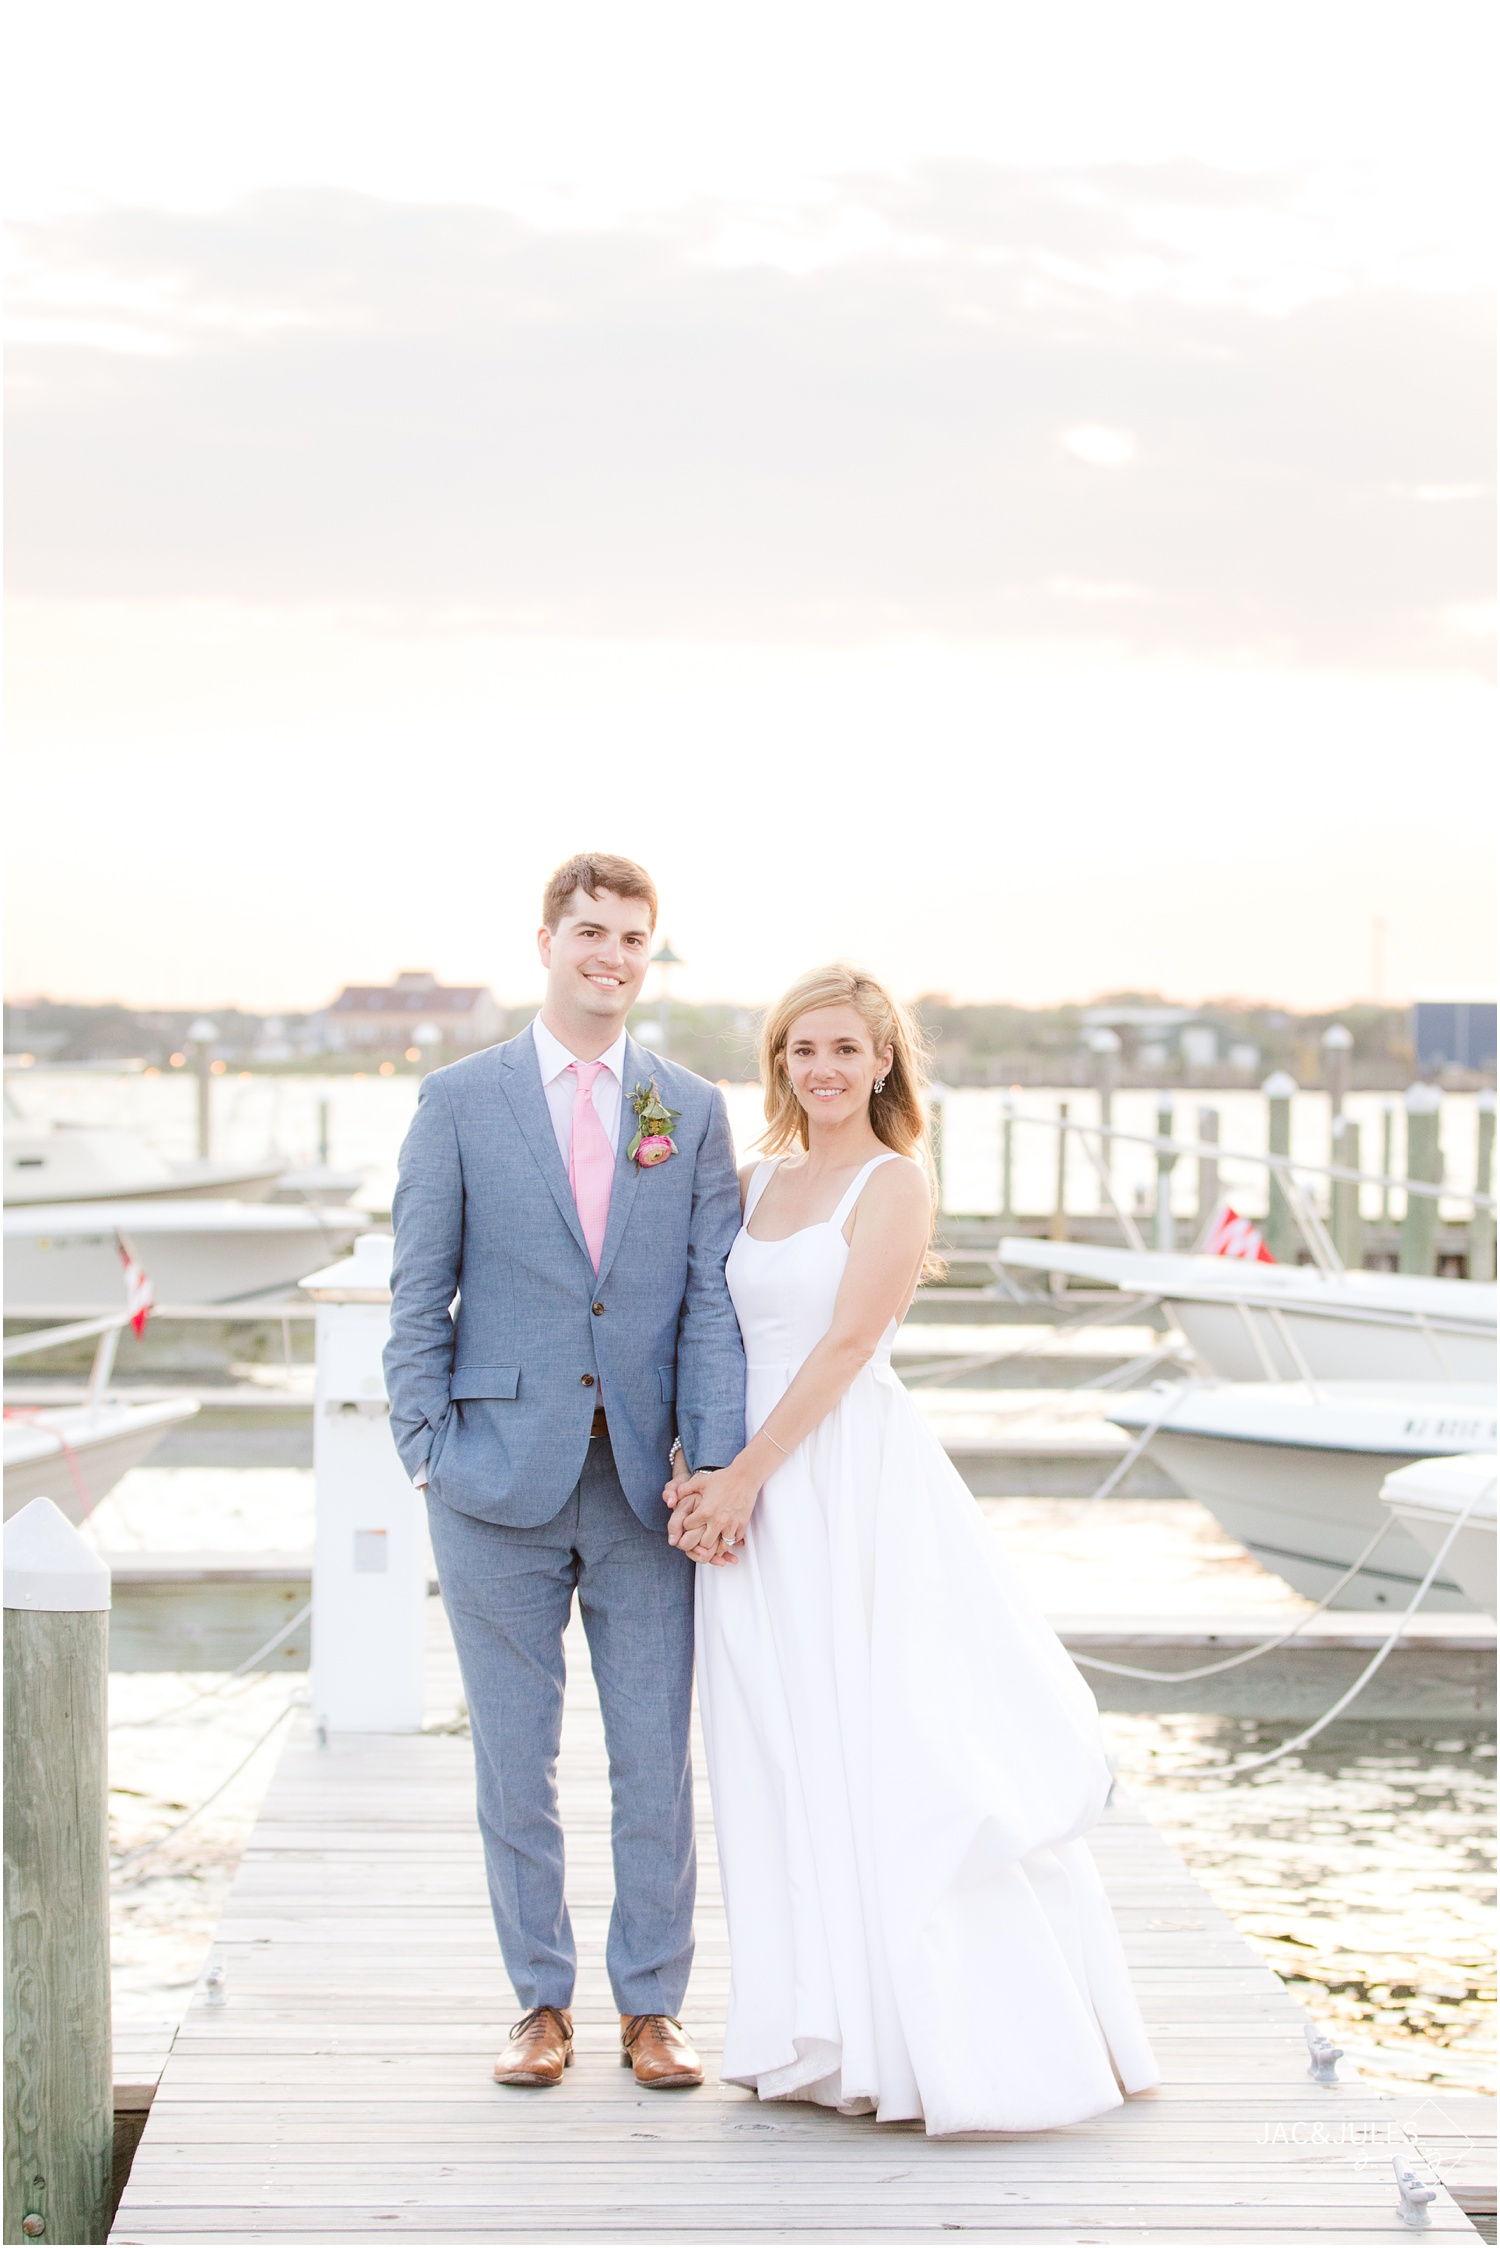 Romantic Just married photo at sunset on the dock at Mantoloking Yacht Club